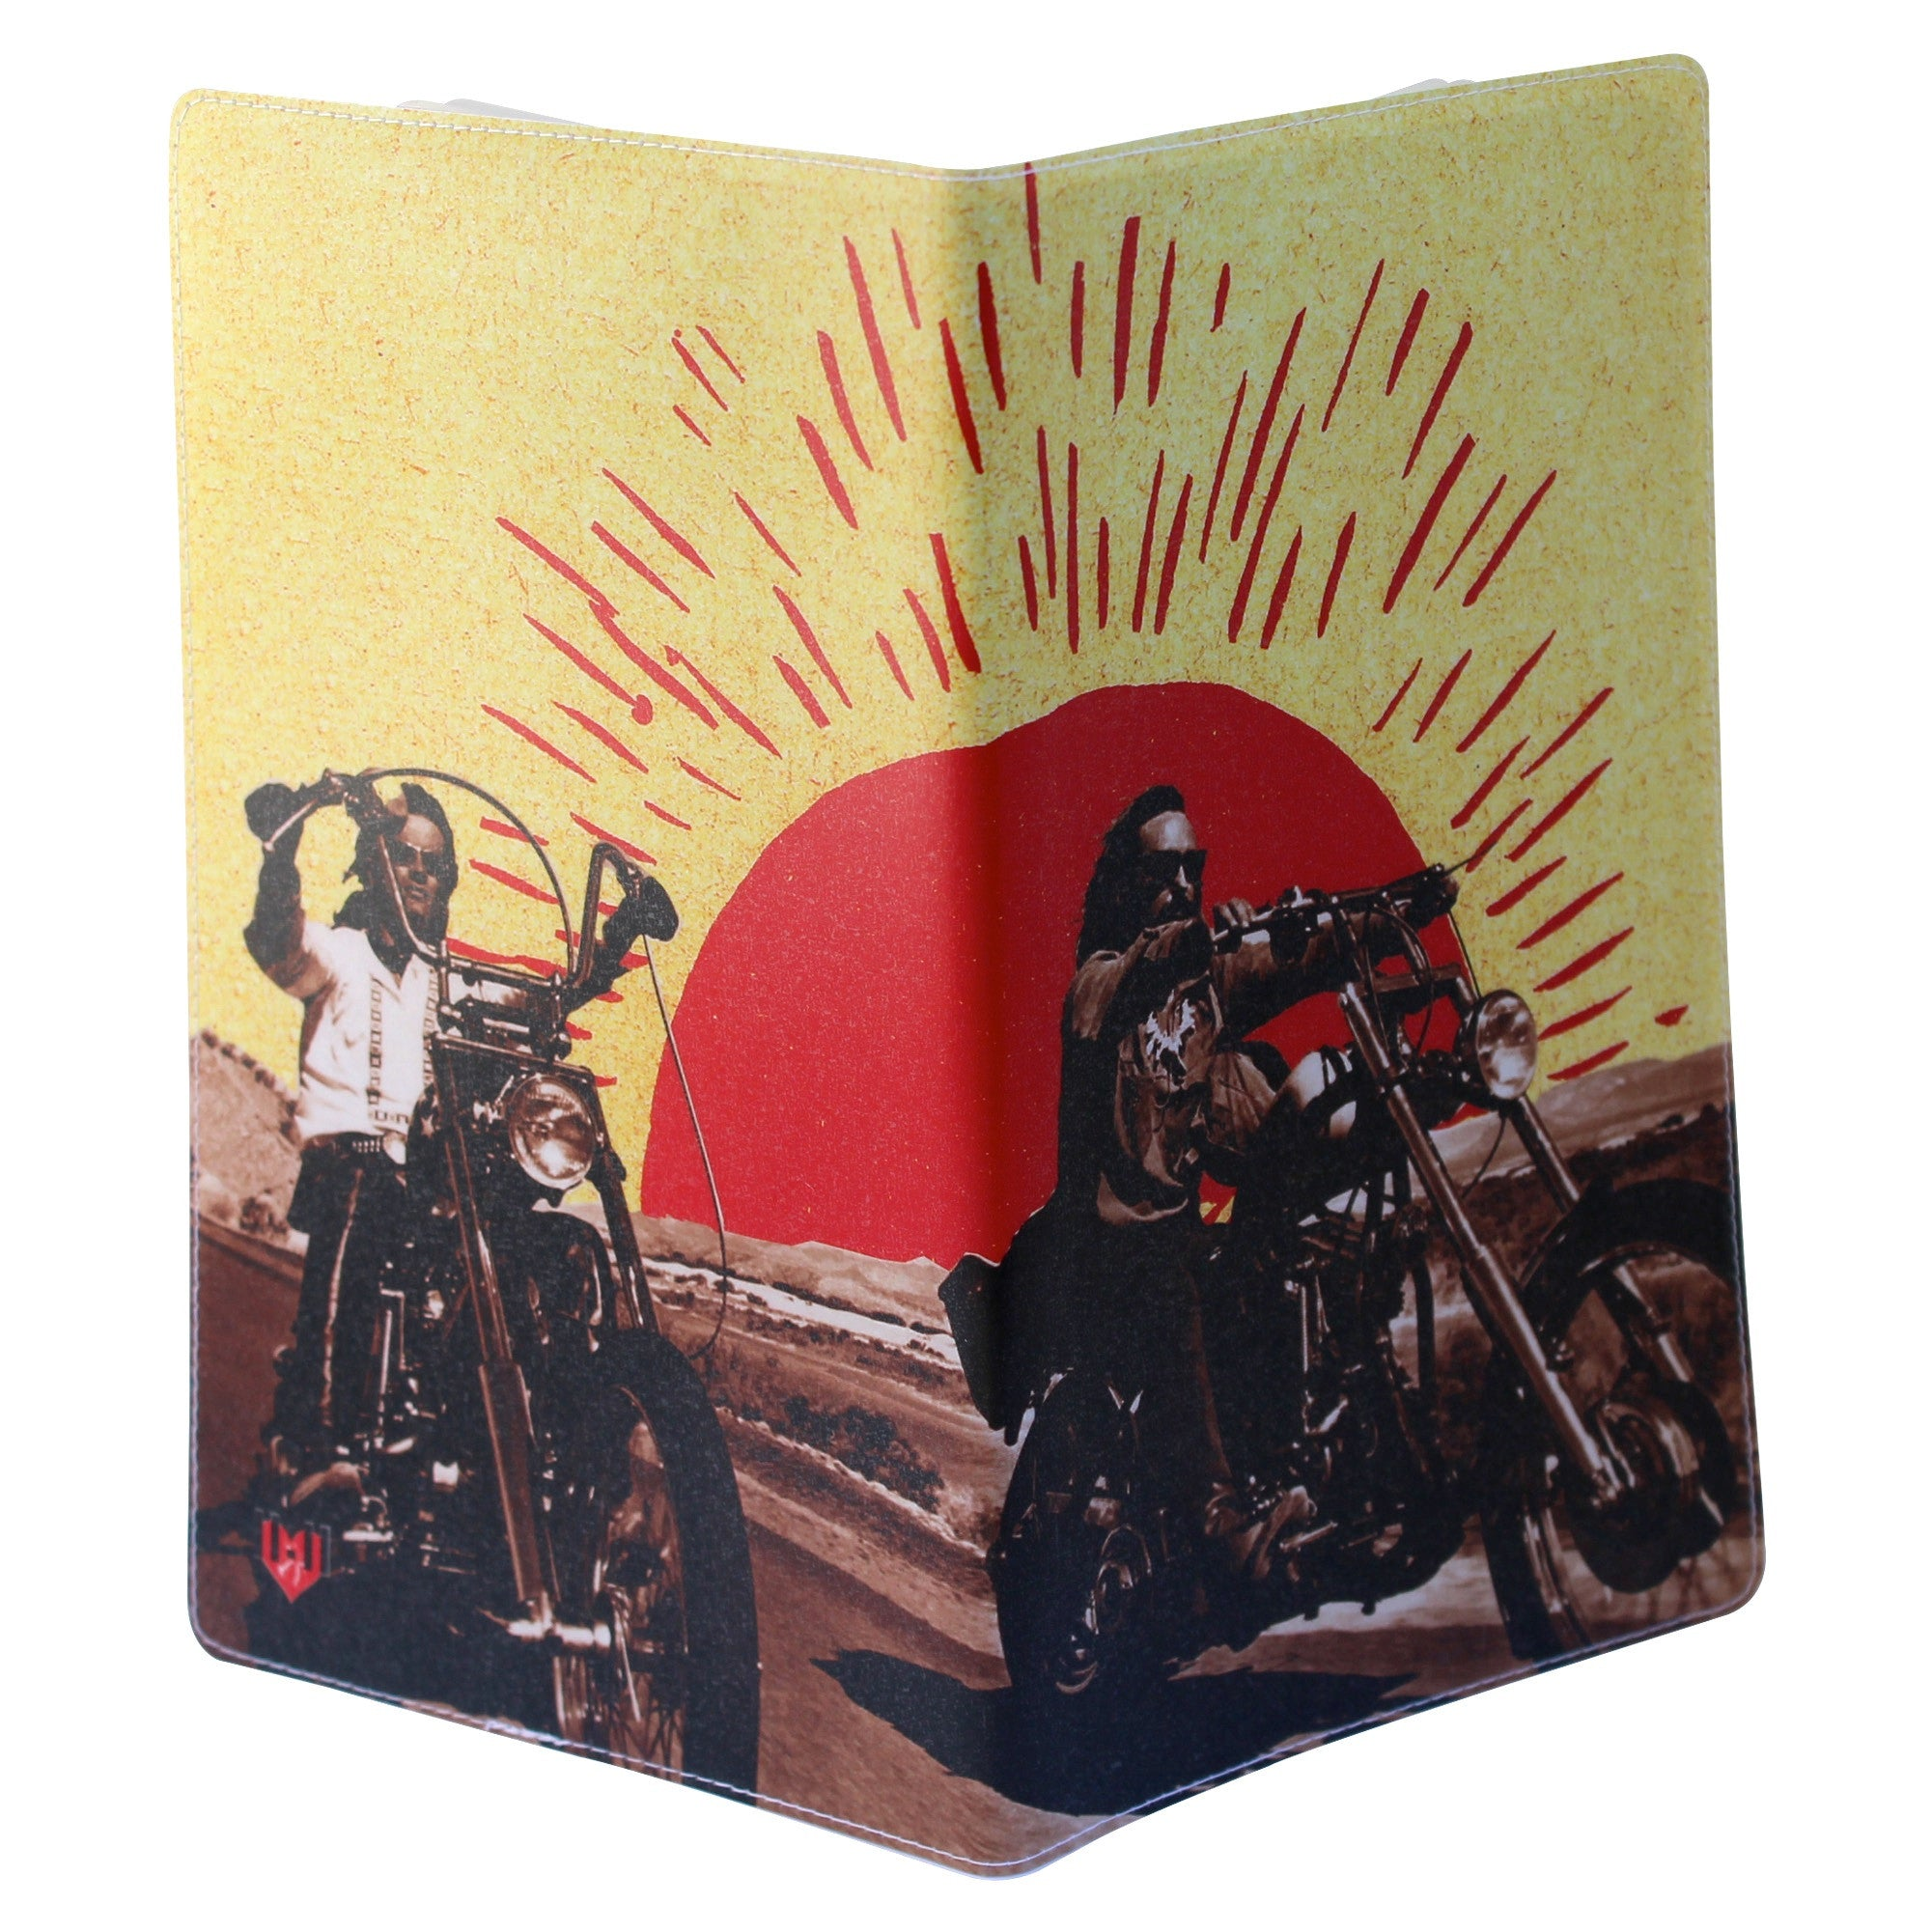 Easy Rider Motorcycle Moleskine Cahier Large Notebook